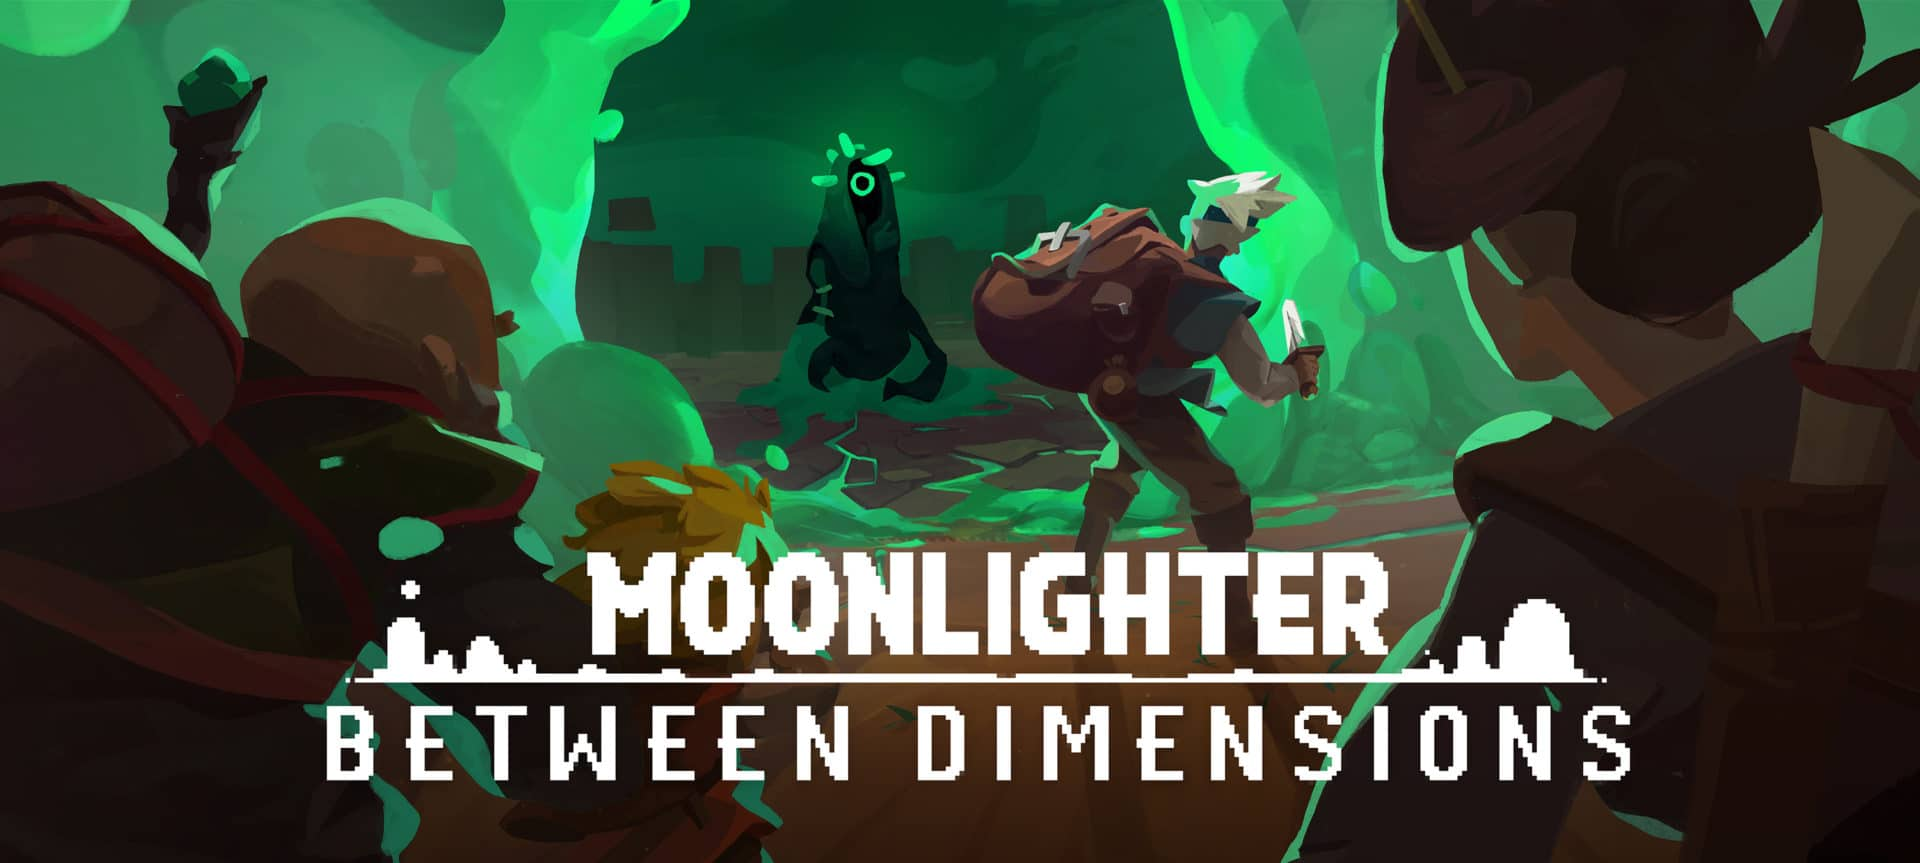 Moonlighter – Between Dimensions betaalde DLC uitbreiding – Trailer & Details